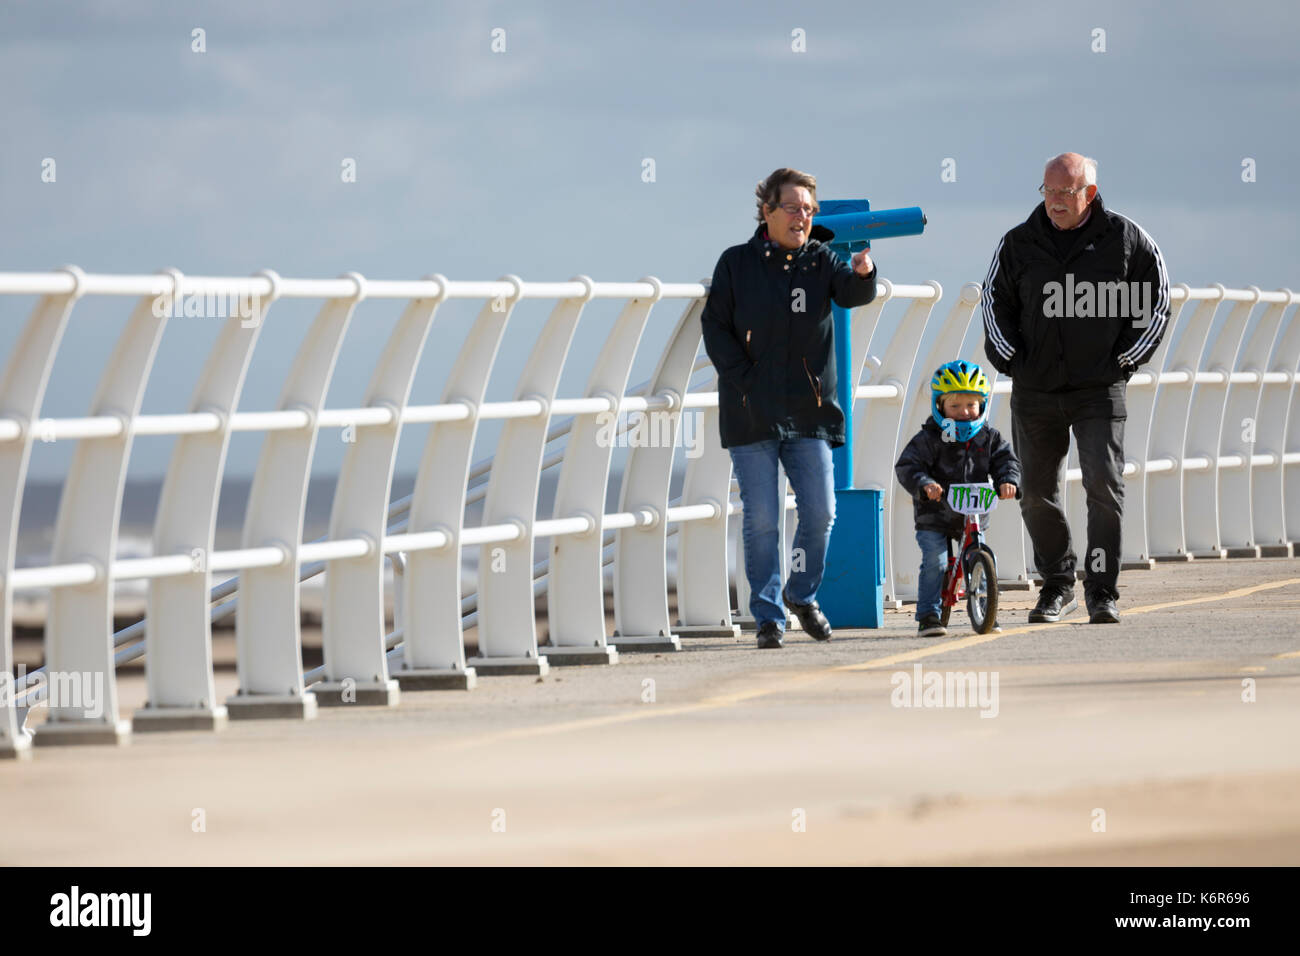 North Wales, 13th September 2017.  UK Weather. The first named storm of season that brought 75mph gales to a central belt of the UK and North Wales now passing over North East of the UK. The Amber Warning for wind and rain is now reduce to yellow warning over North Wales as these people discovered along the promenade in Rhyl this morning, Denbighshire, Wales © DGDImages/Alamy Live News - Stock Image